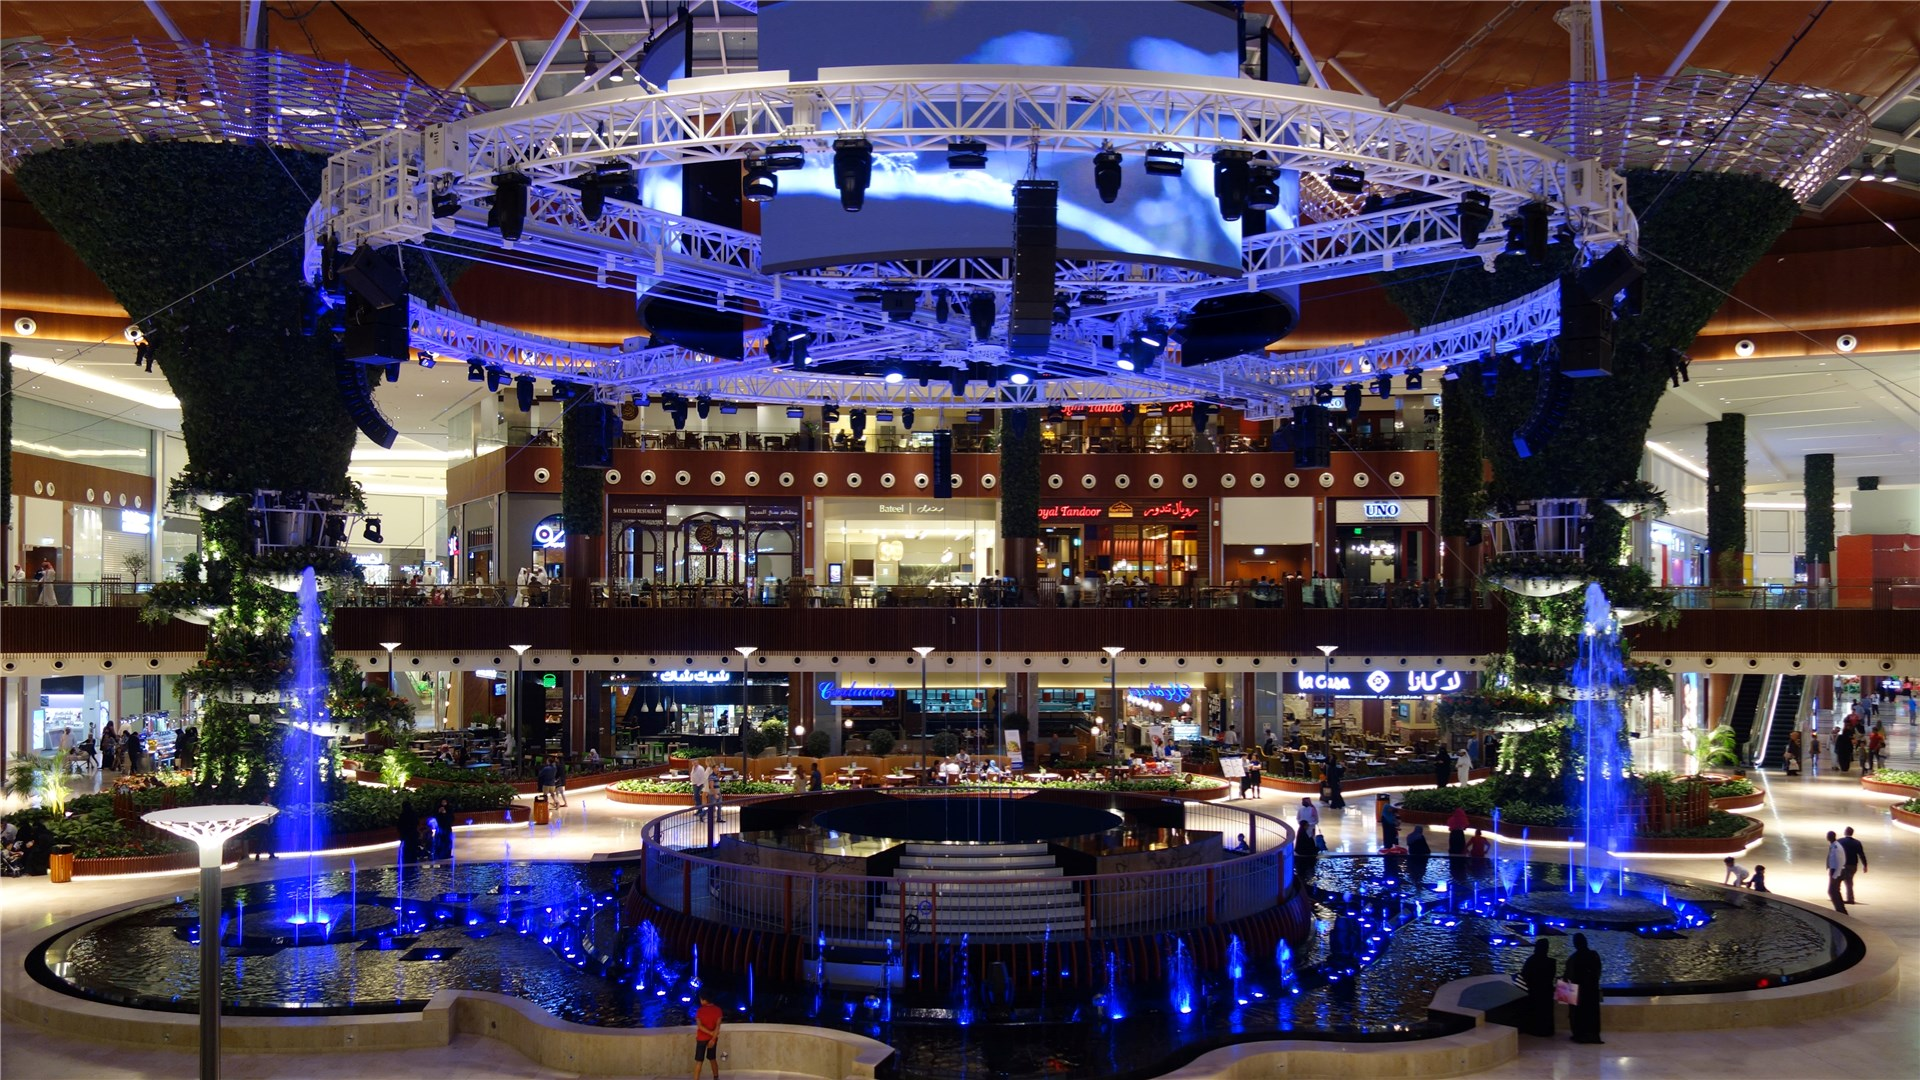 SGM Luminaires Chosen for Oasis Venue in Mall of Qatar